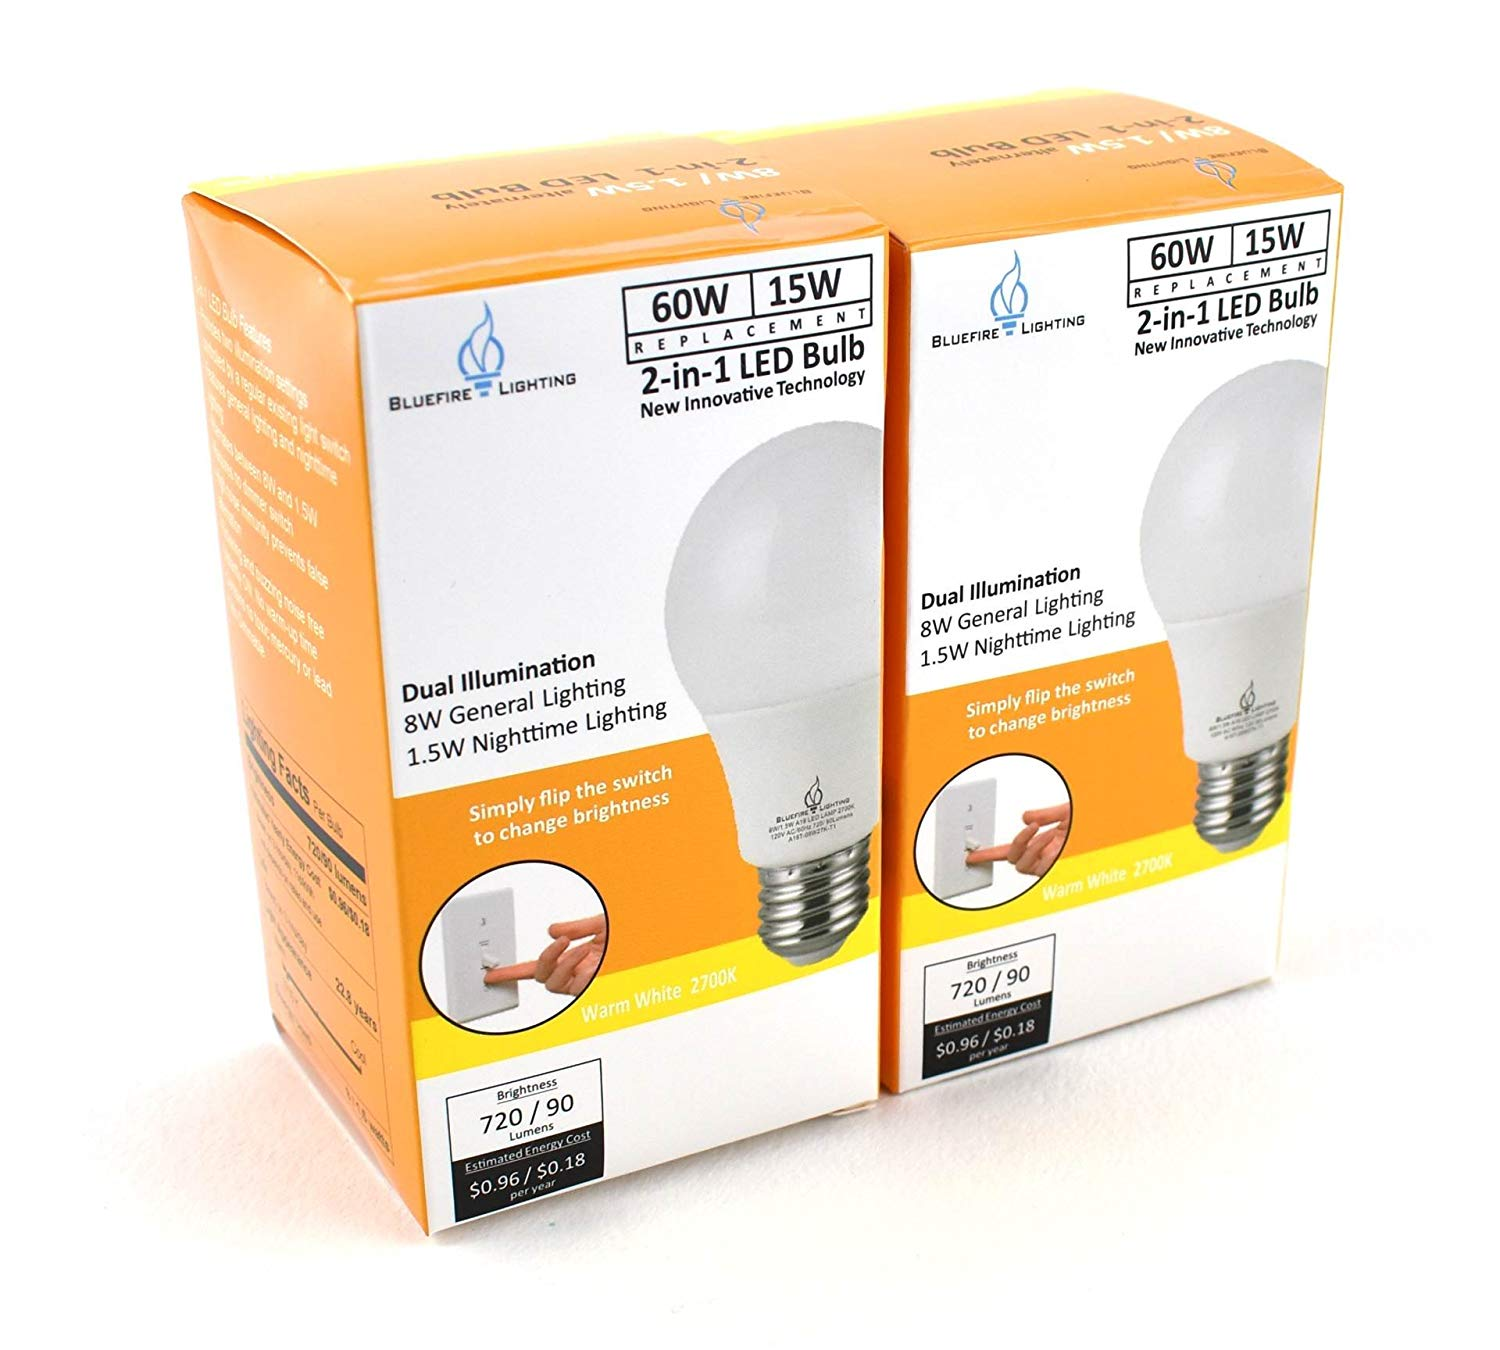 Bluefire Lighting - 2-Way LED Light Bulb Switchable Lighting , 60 Watt Equivalent (15W) / 8 Watt Equivalent (1.5W) Night Light, A19 - Warm White 2700K - 2 Pack